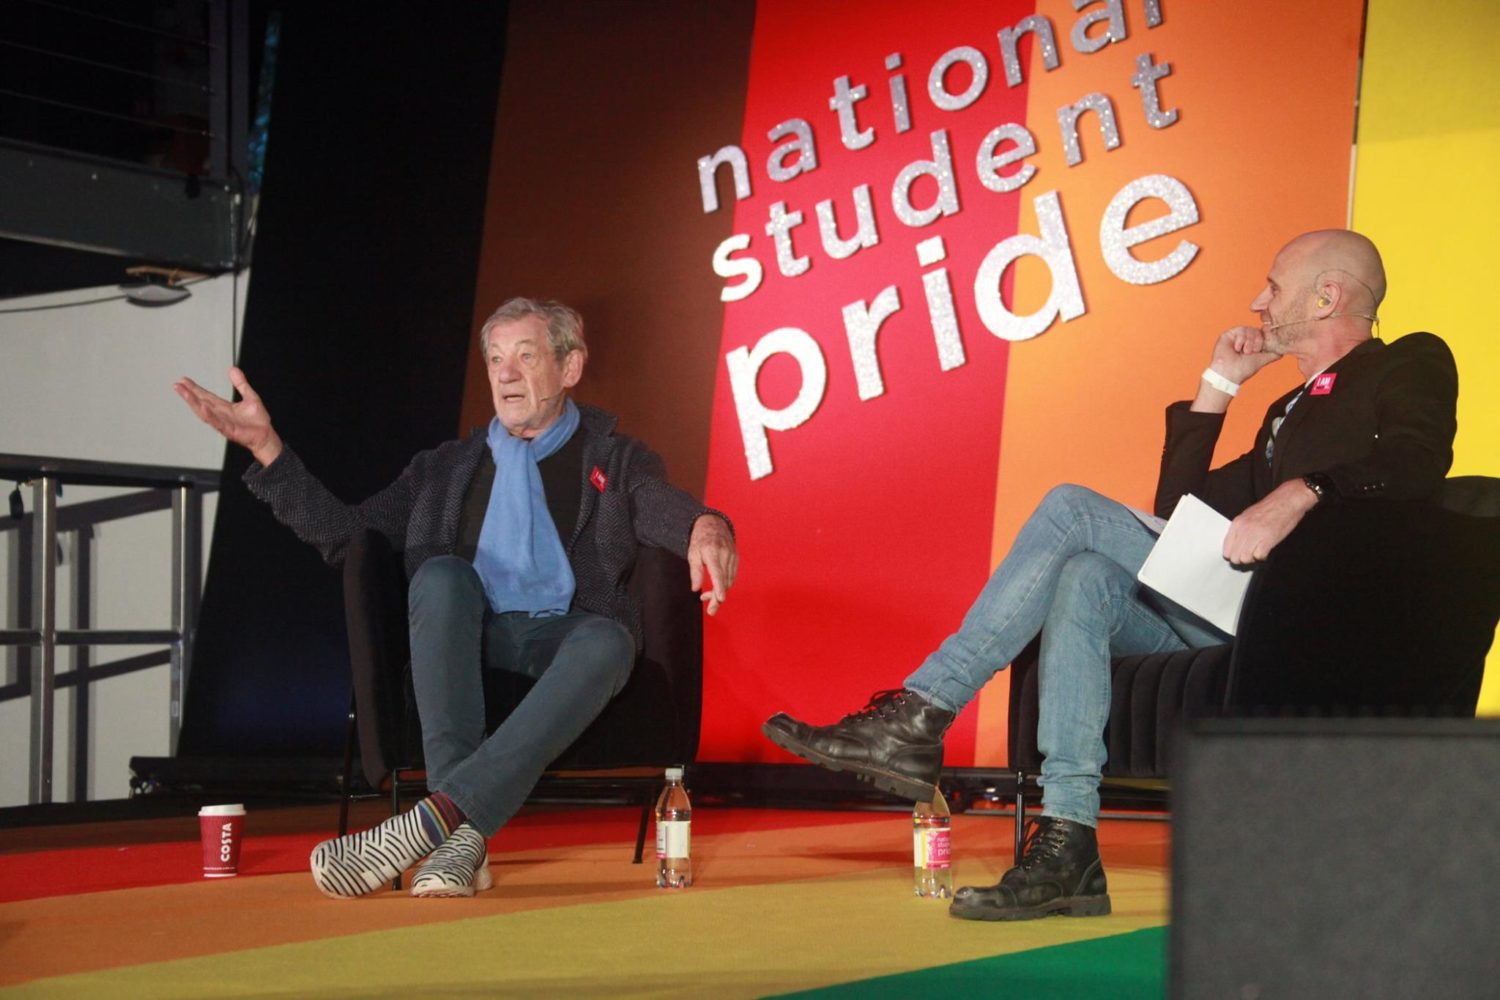 Ian McKellen talks chemsex and drugs at National Student Pride